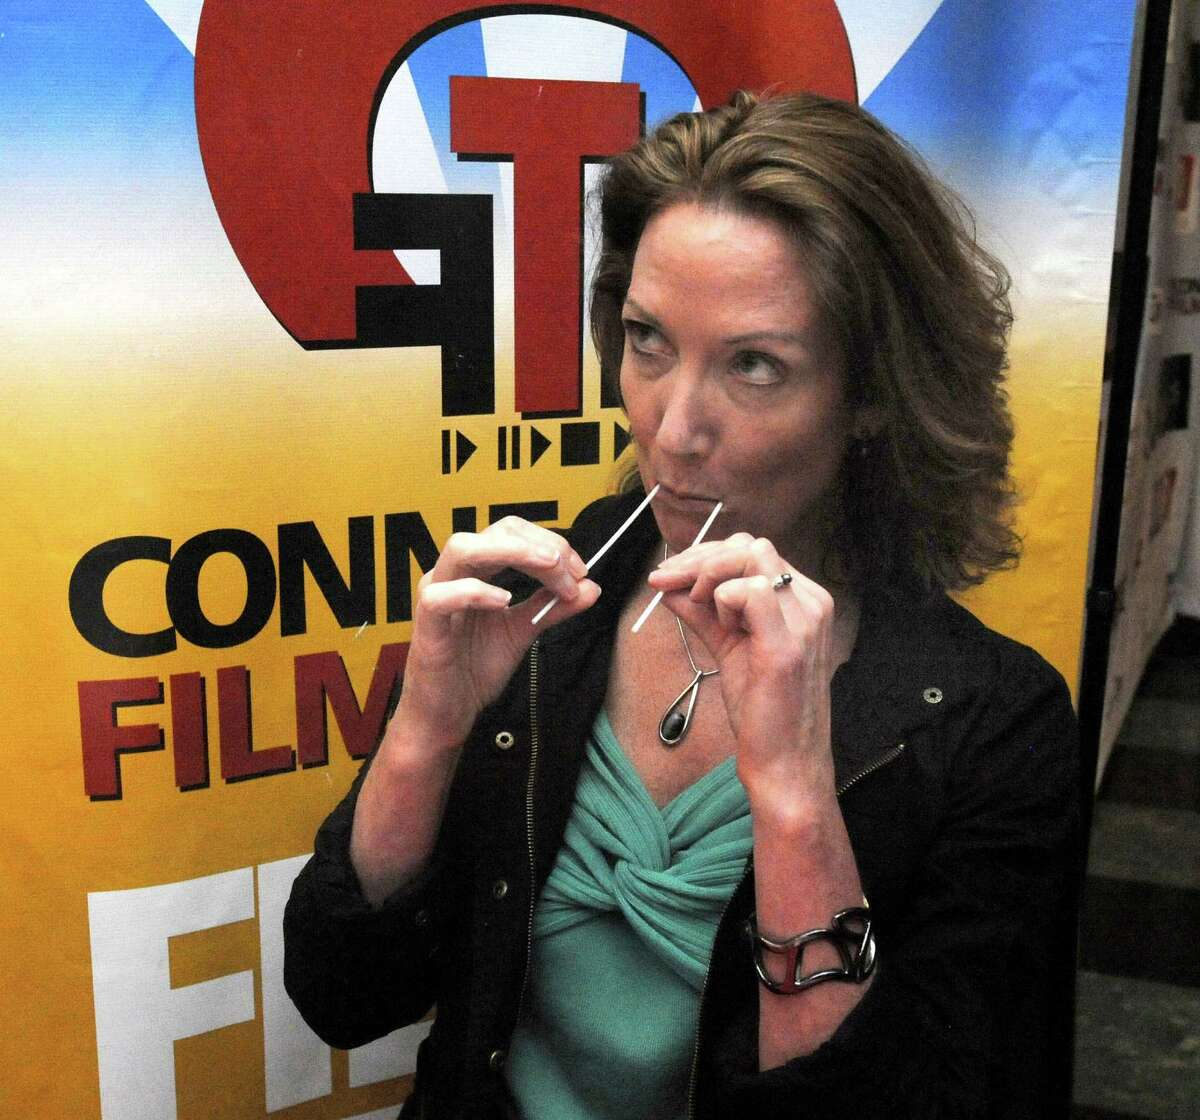 Susan Gross of Danbury swabs her mouth to become part of a bone marrow donor list at the Palace Theatre in Danbury during the Connecticut Film Festival Sunday, April 29, 2012. The closing movie,